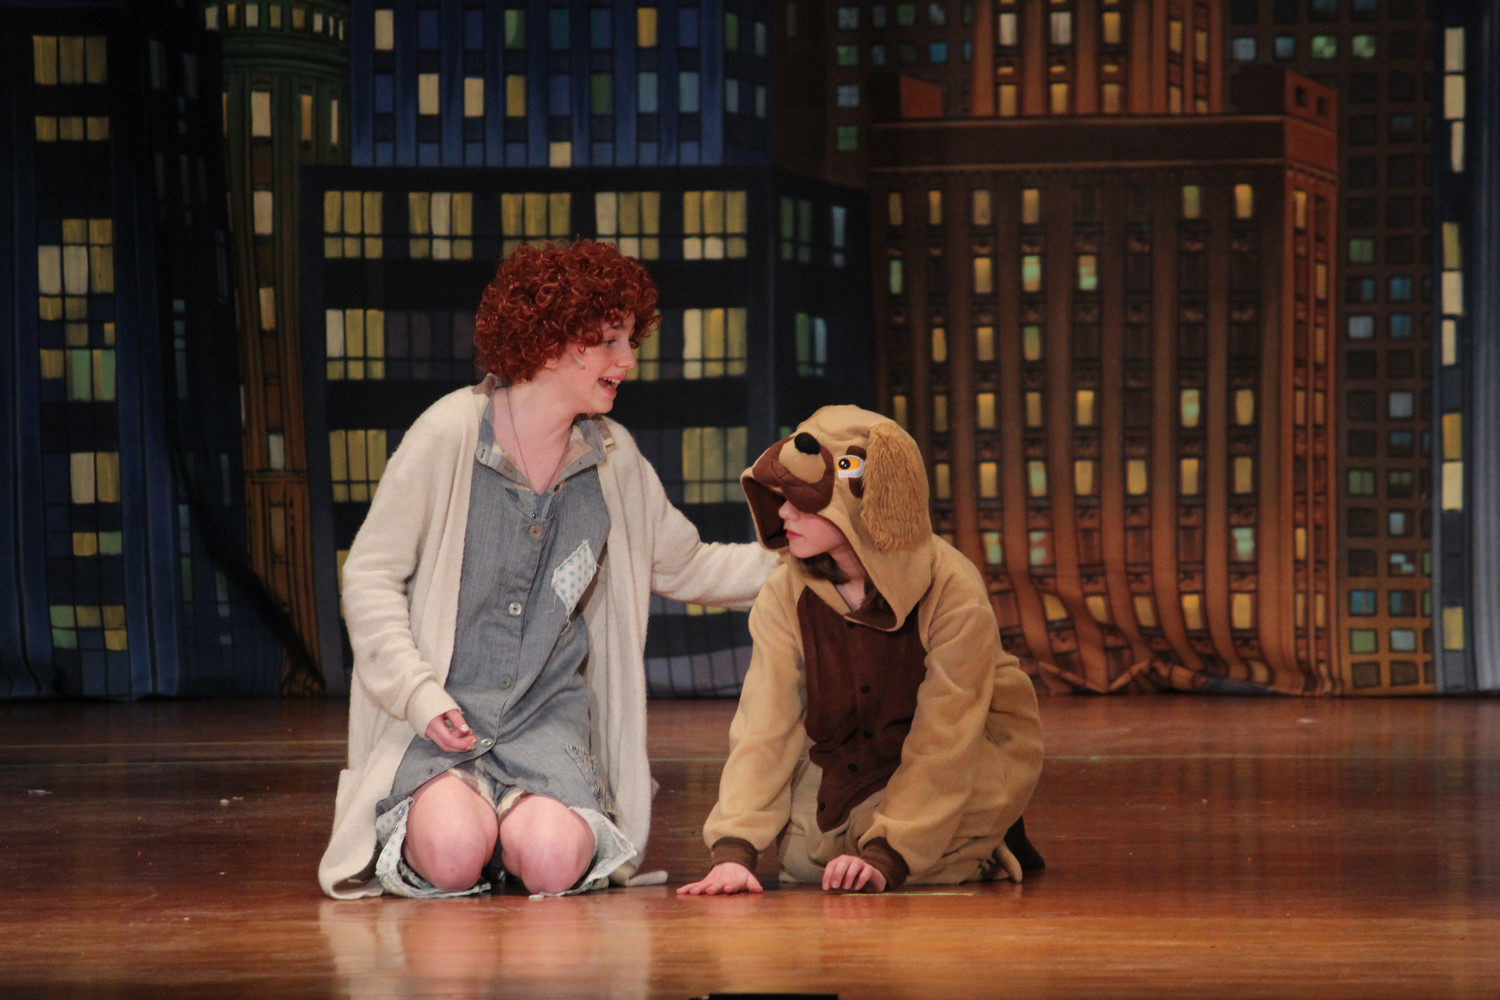 In the Baldwin Middle School production of Annie Jr. the roles of Annie and Sandy, her dog, were played by Skylar Smith and Samantha Lignowski.  The cast and crew were faced with losing several rehearsals to winter weather, but they pulled through and put on a great show.